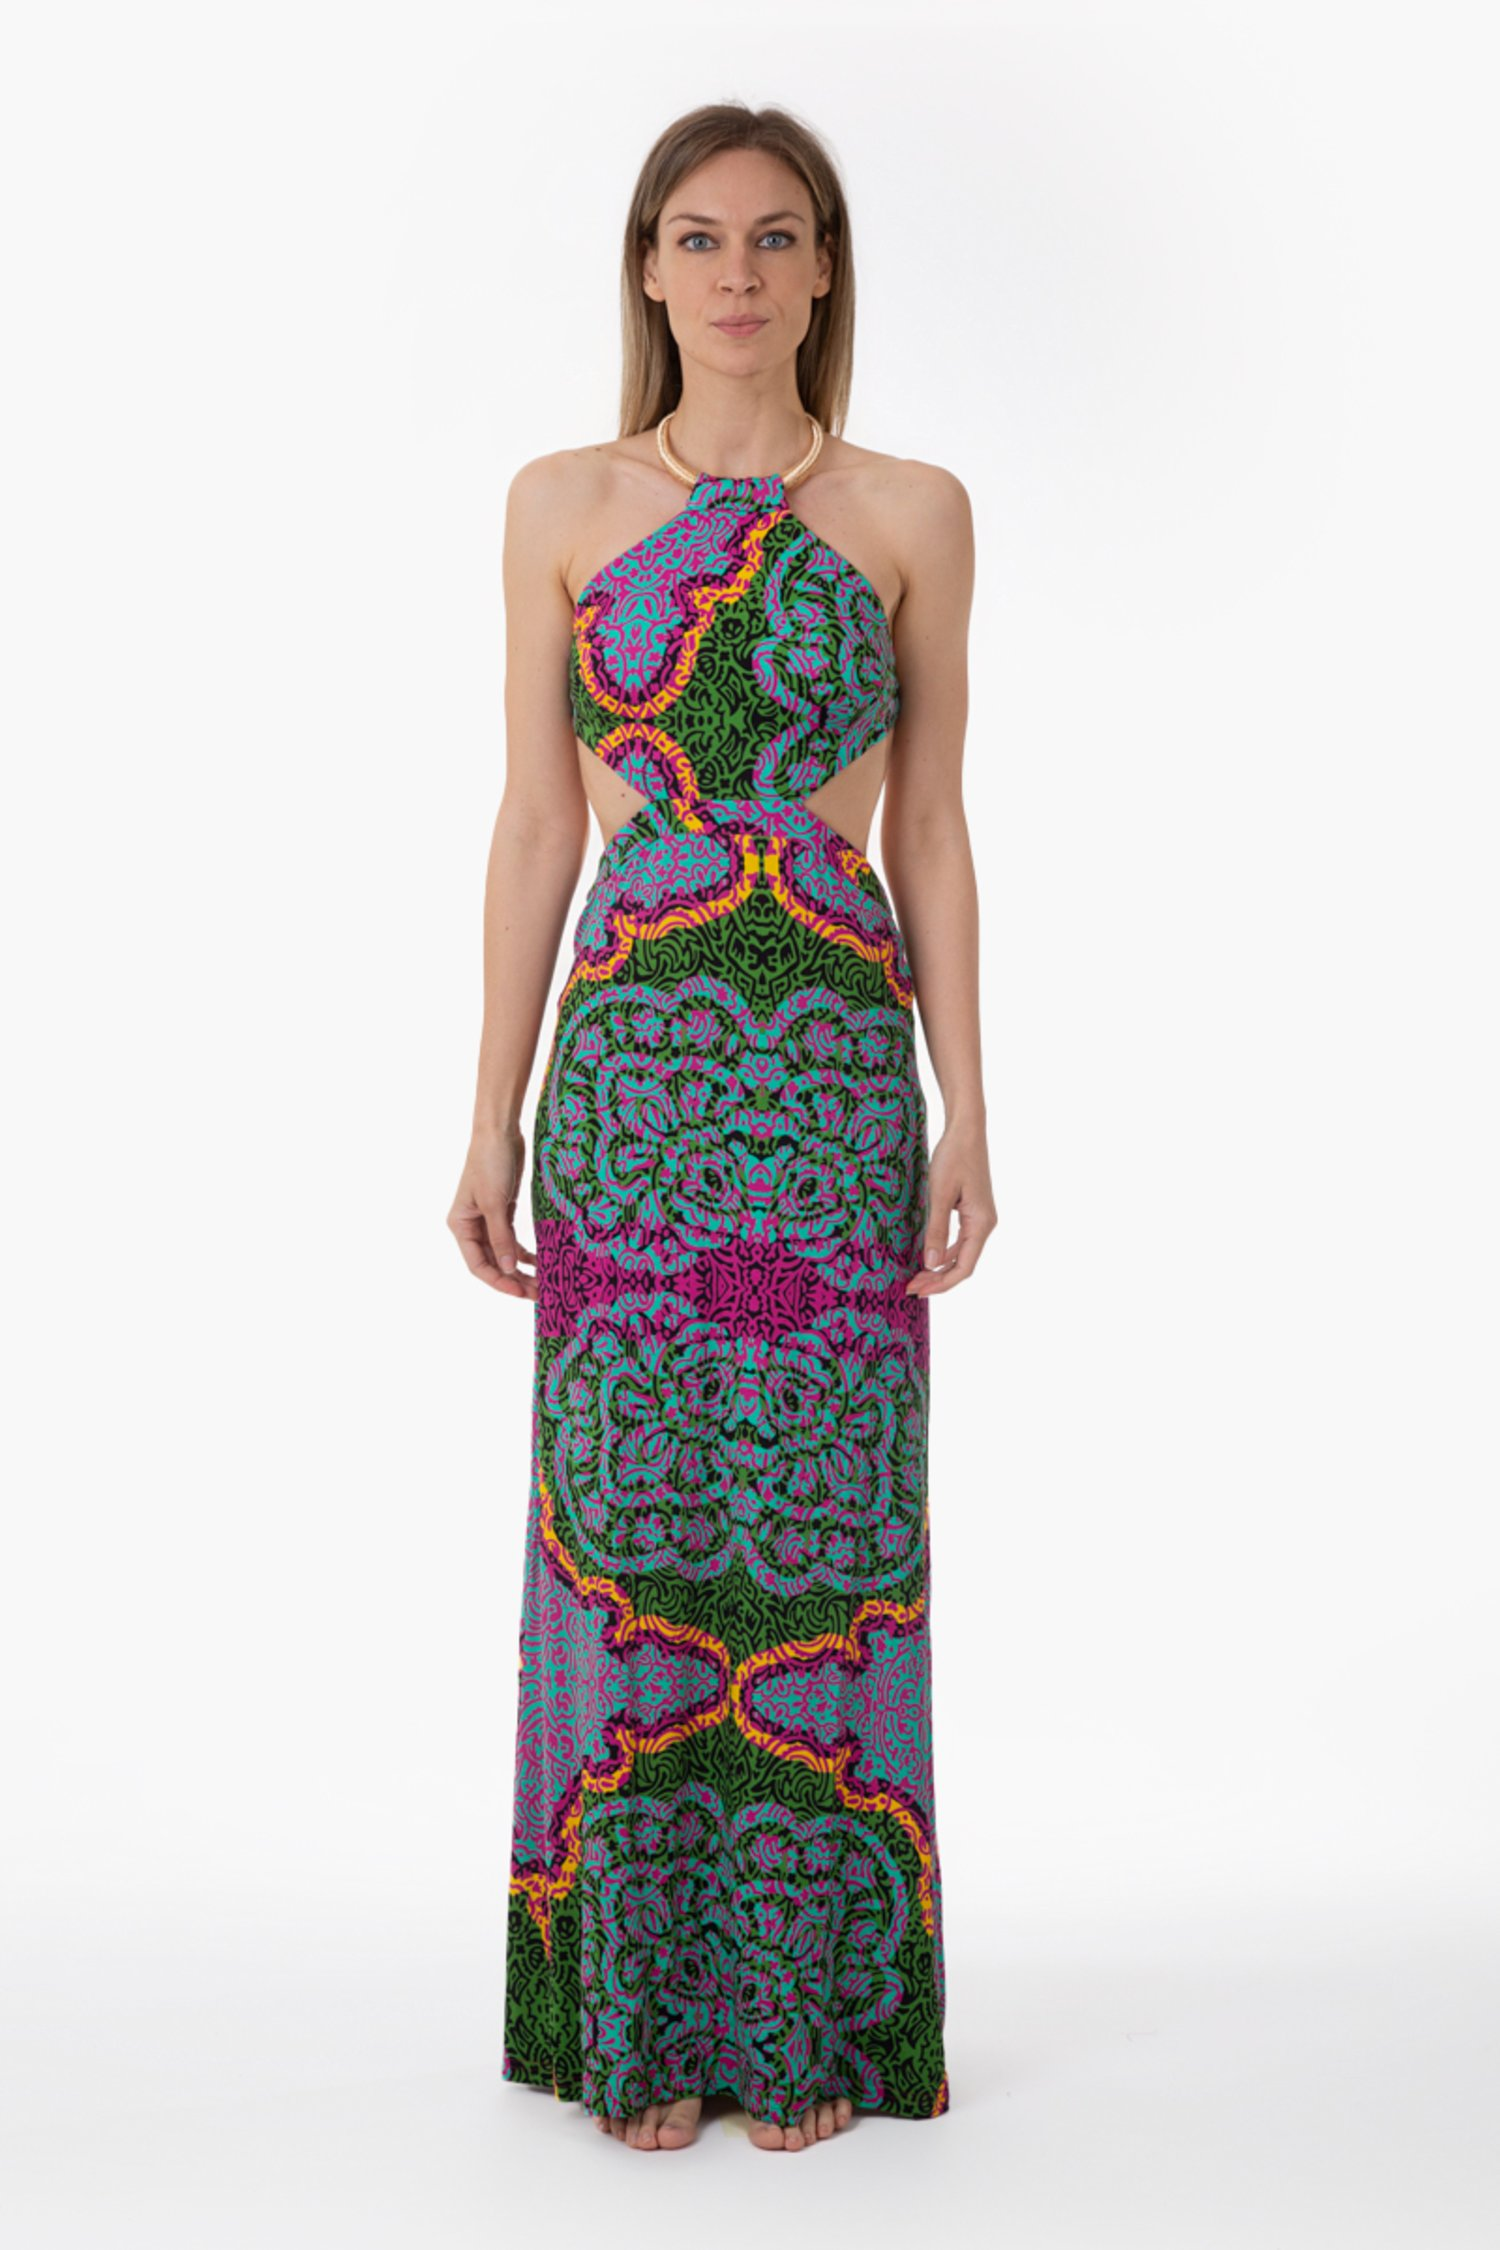 PRINTED JERSEY LONG DRESS WITH NECKLACE - India Pop Fuxia